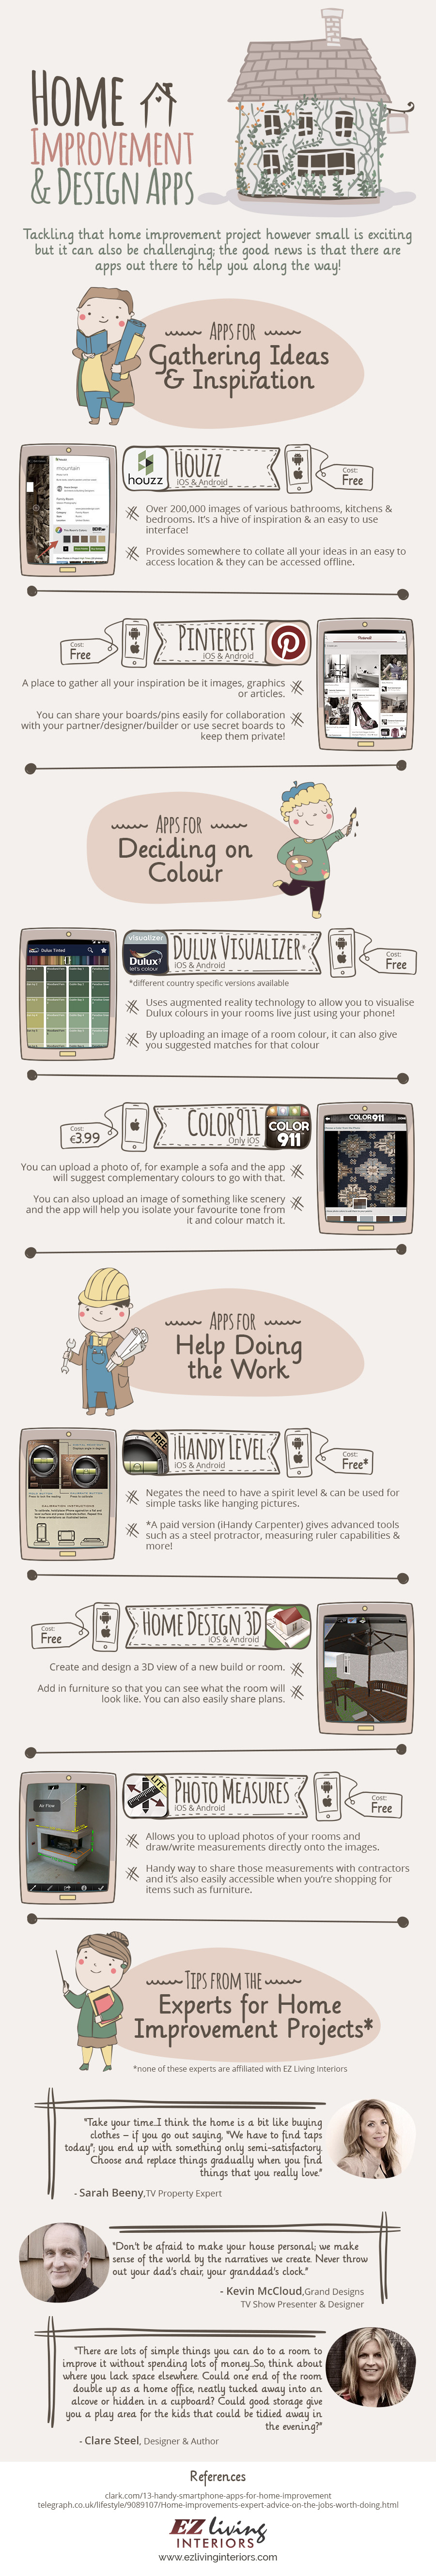 Home Improvement Apps [Infographic]